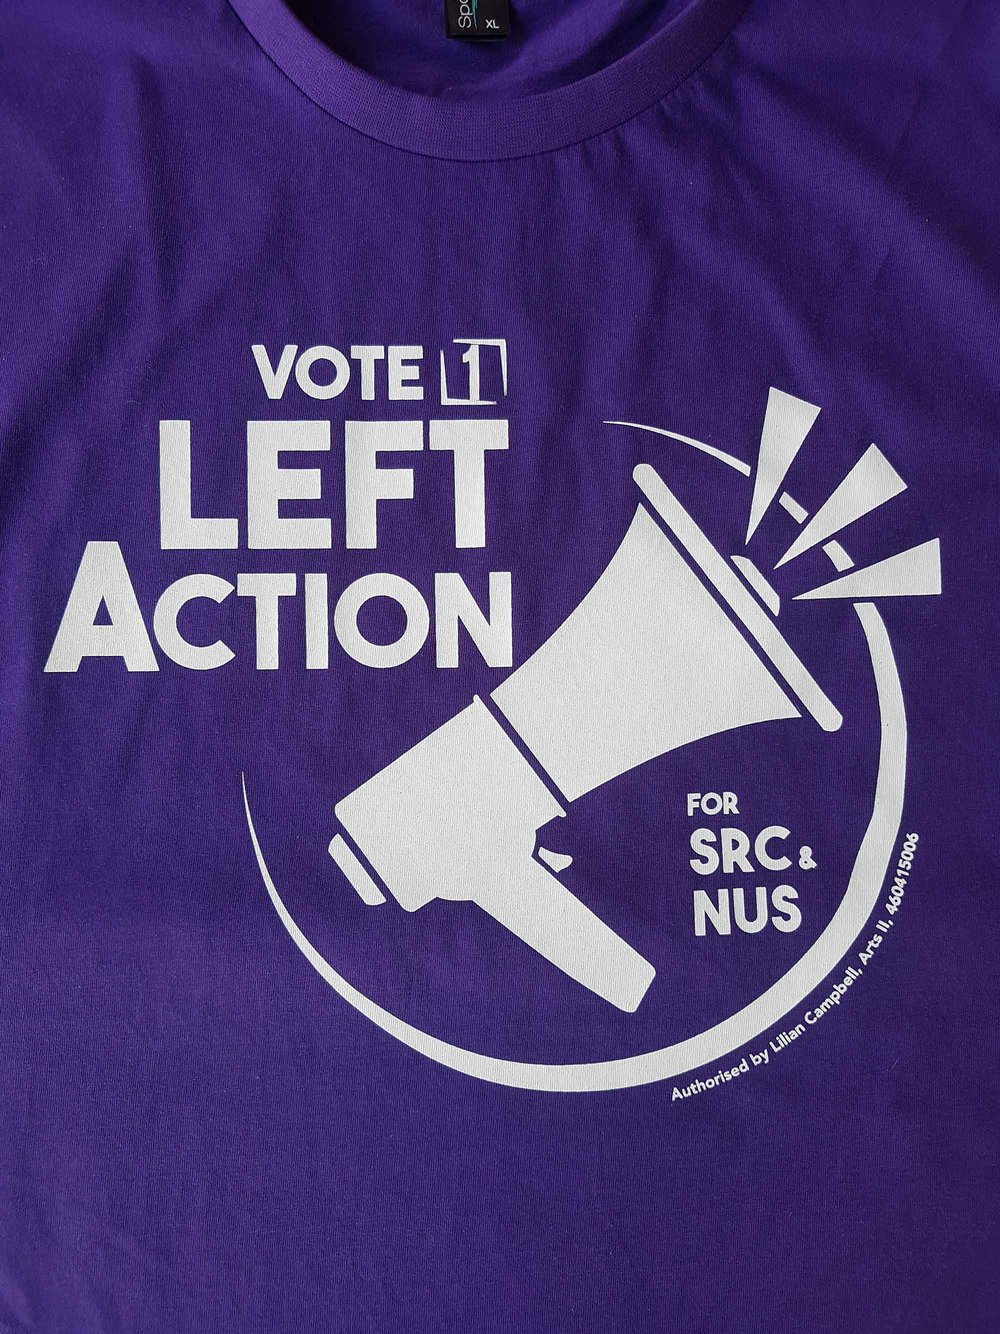 Left action t shirts